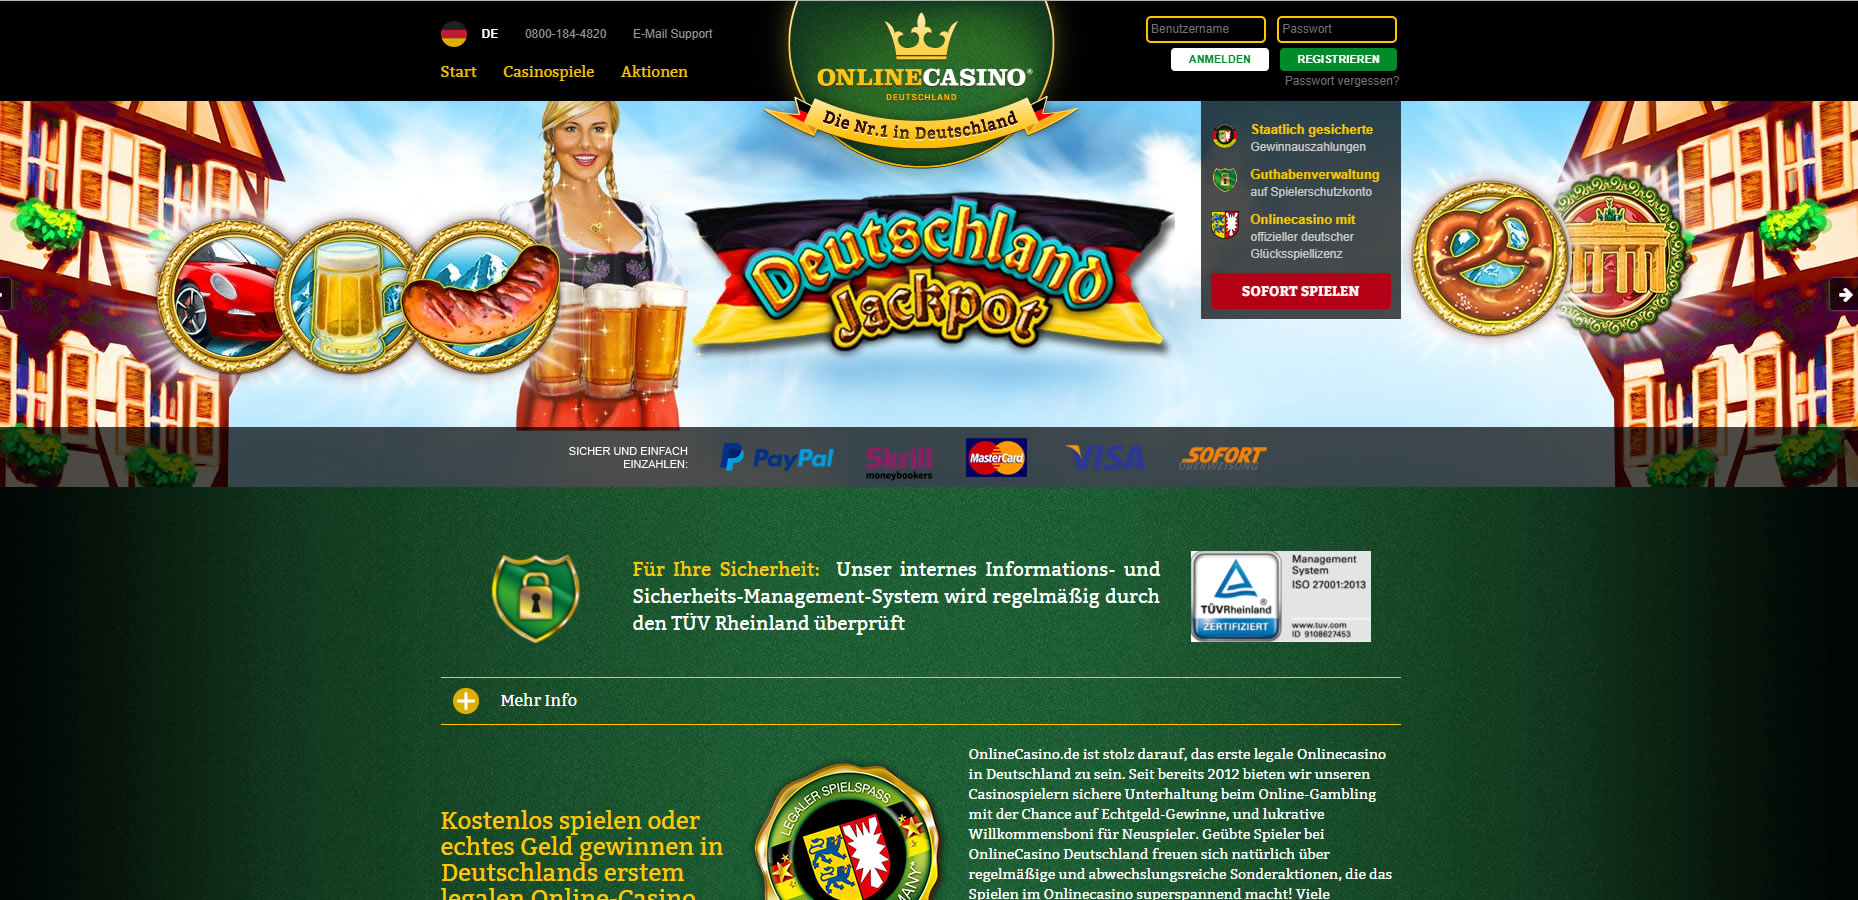 Casino spiele deutschland pkr poker no download